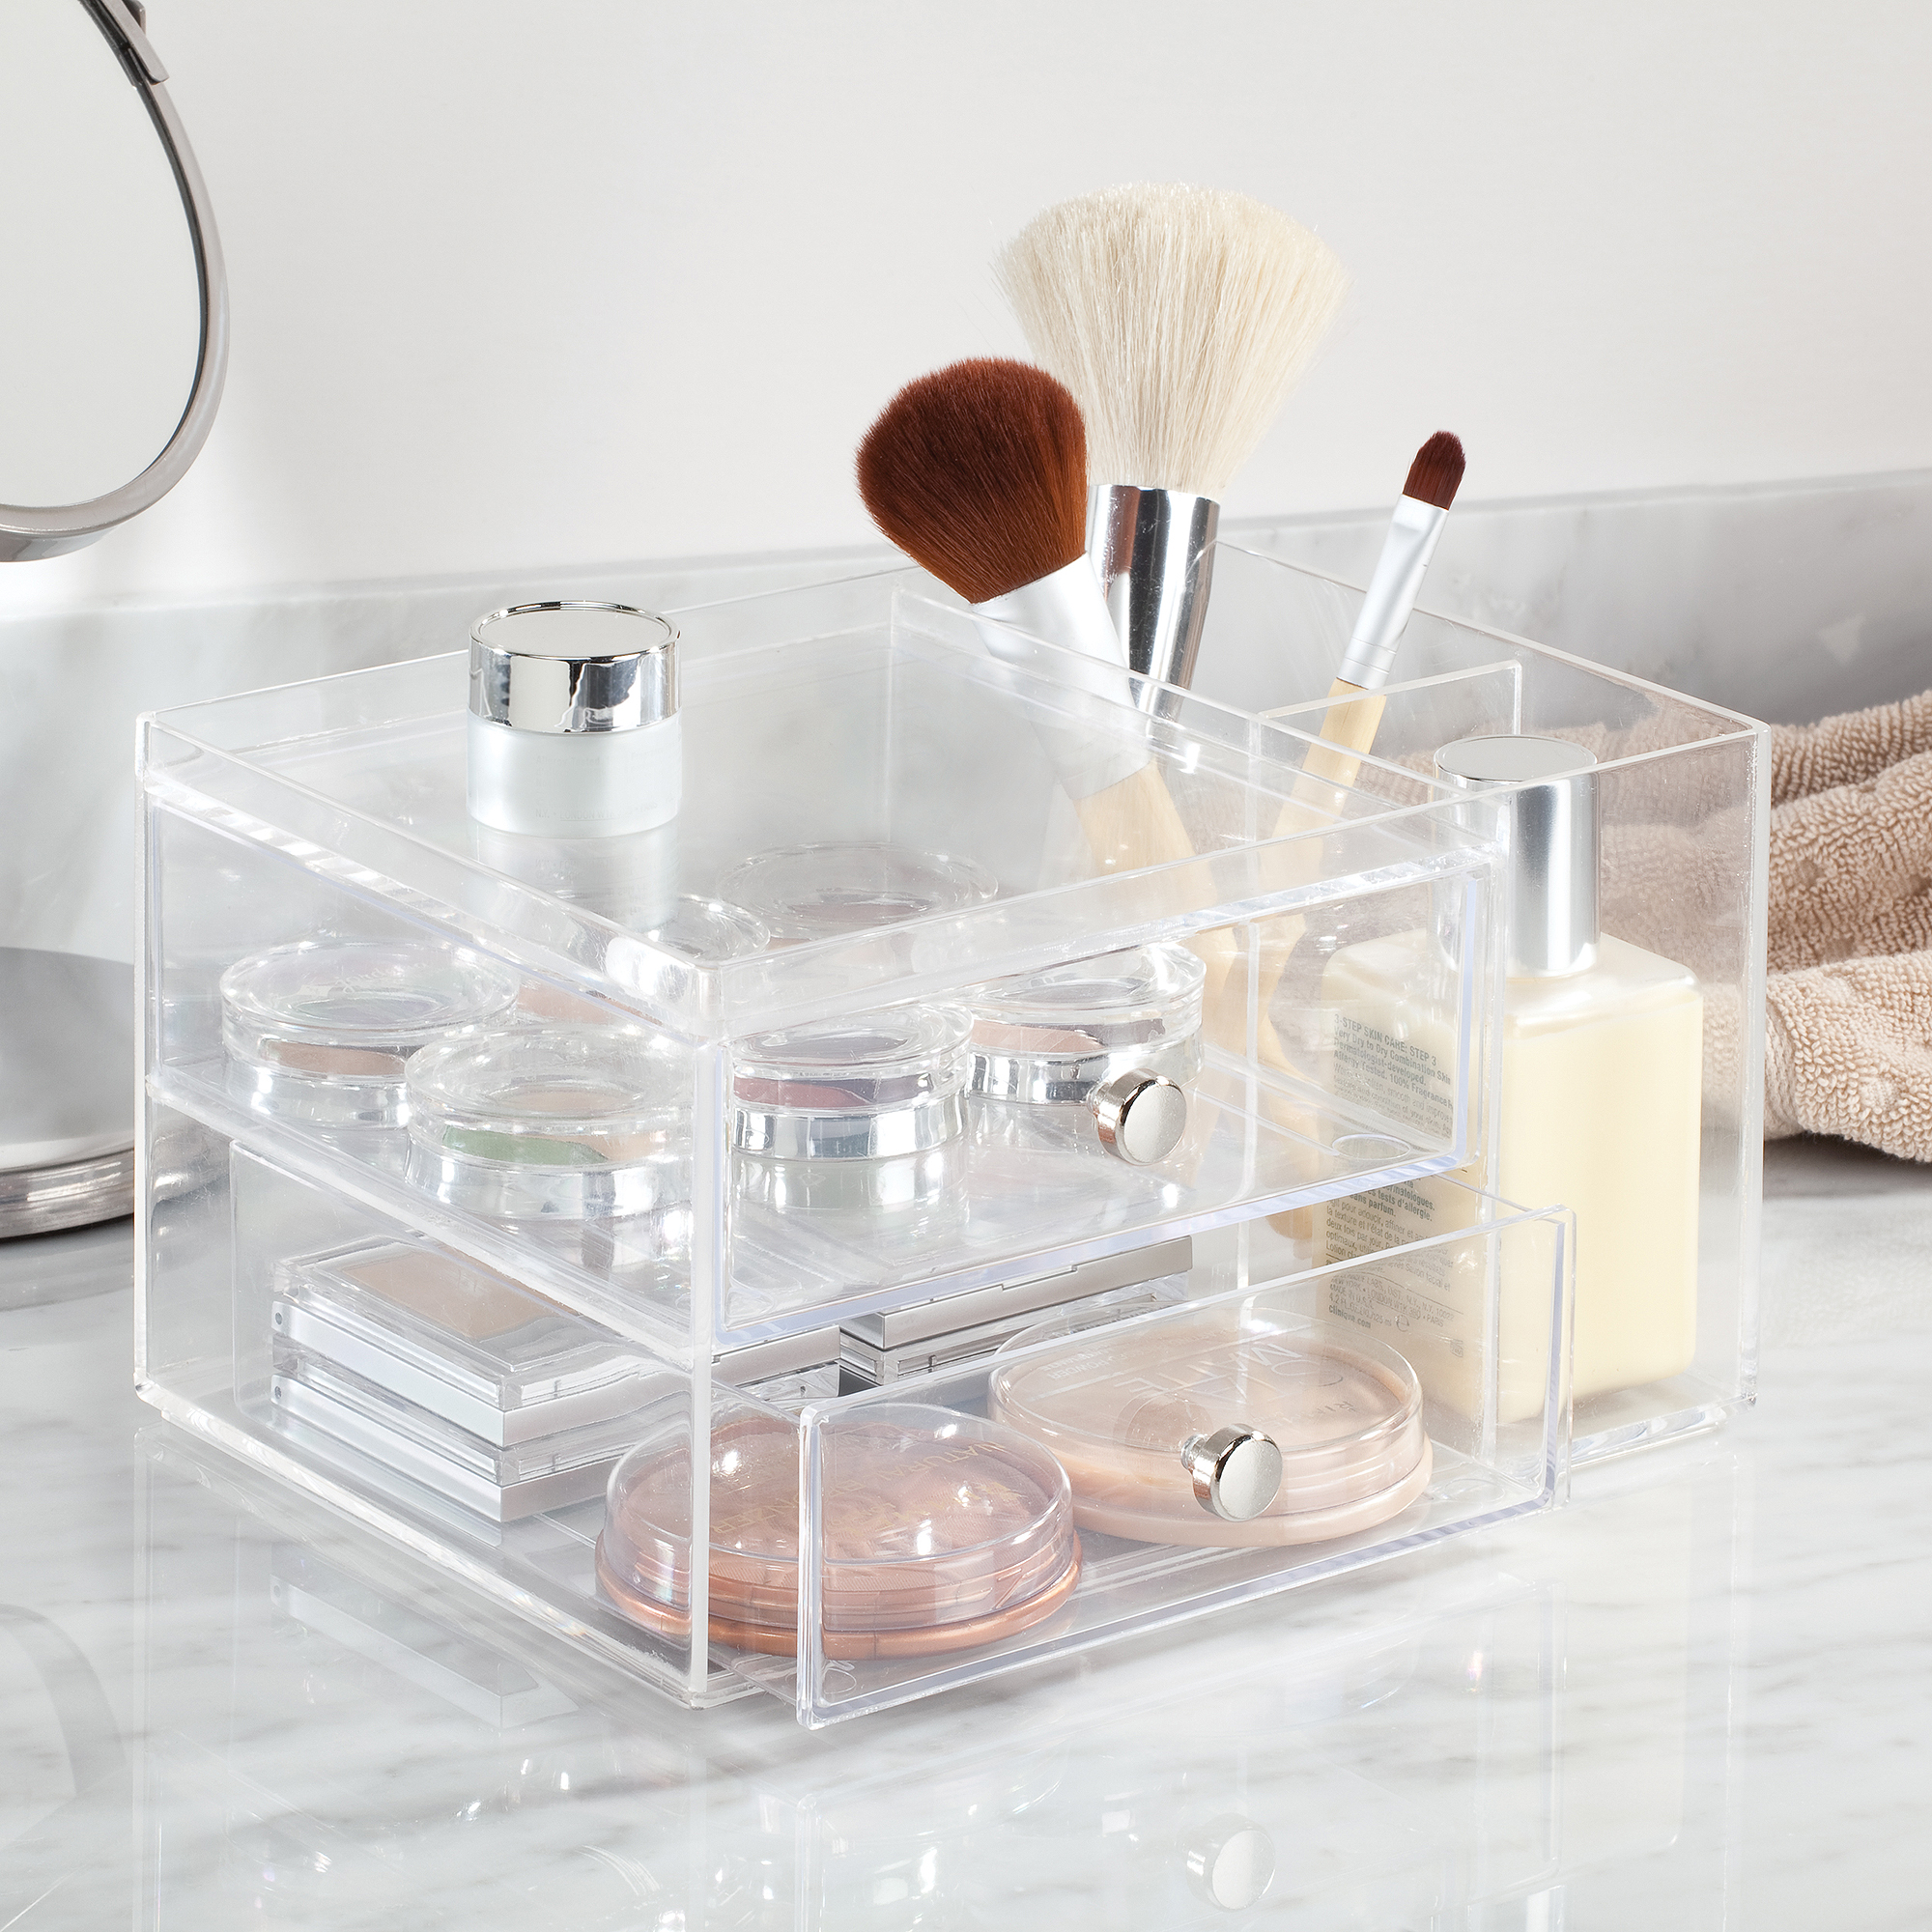 makeup organizer drawers walmart. interdesign clarity cosmetic organizer for vanity cabinet to hold makeup, beauty products, 2 drawer makeup drawers walmart